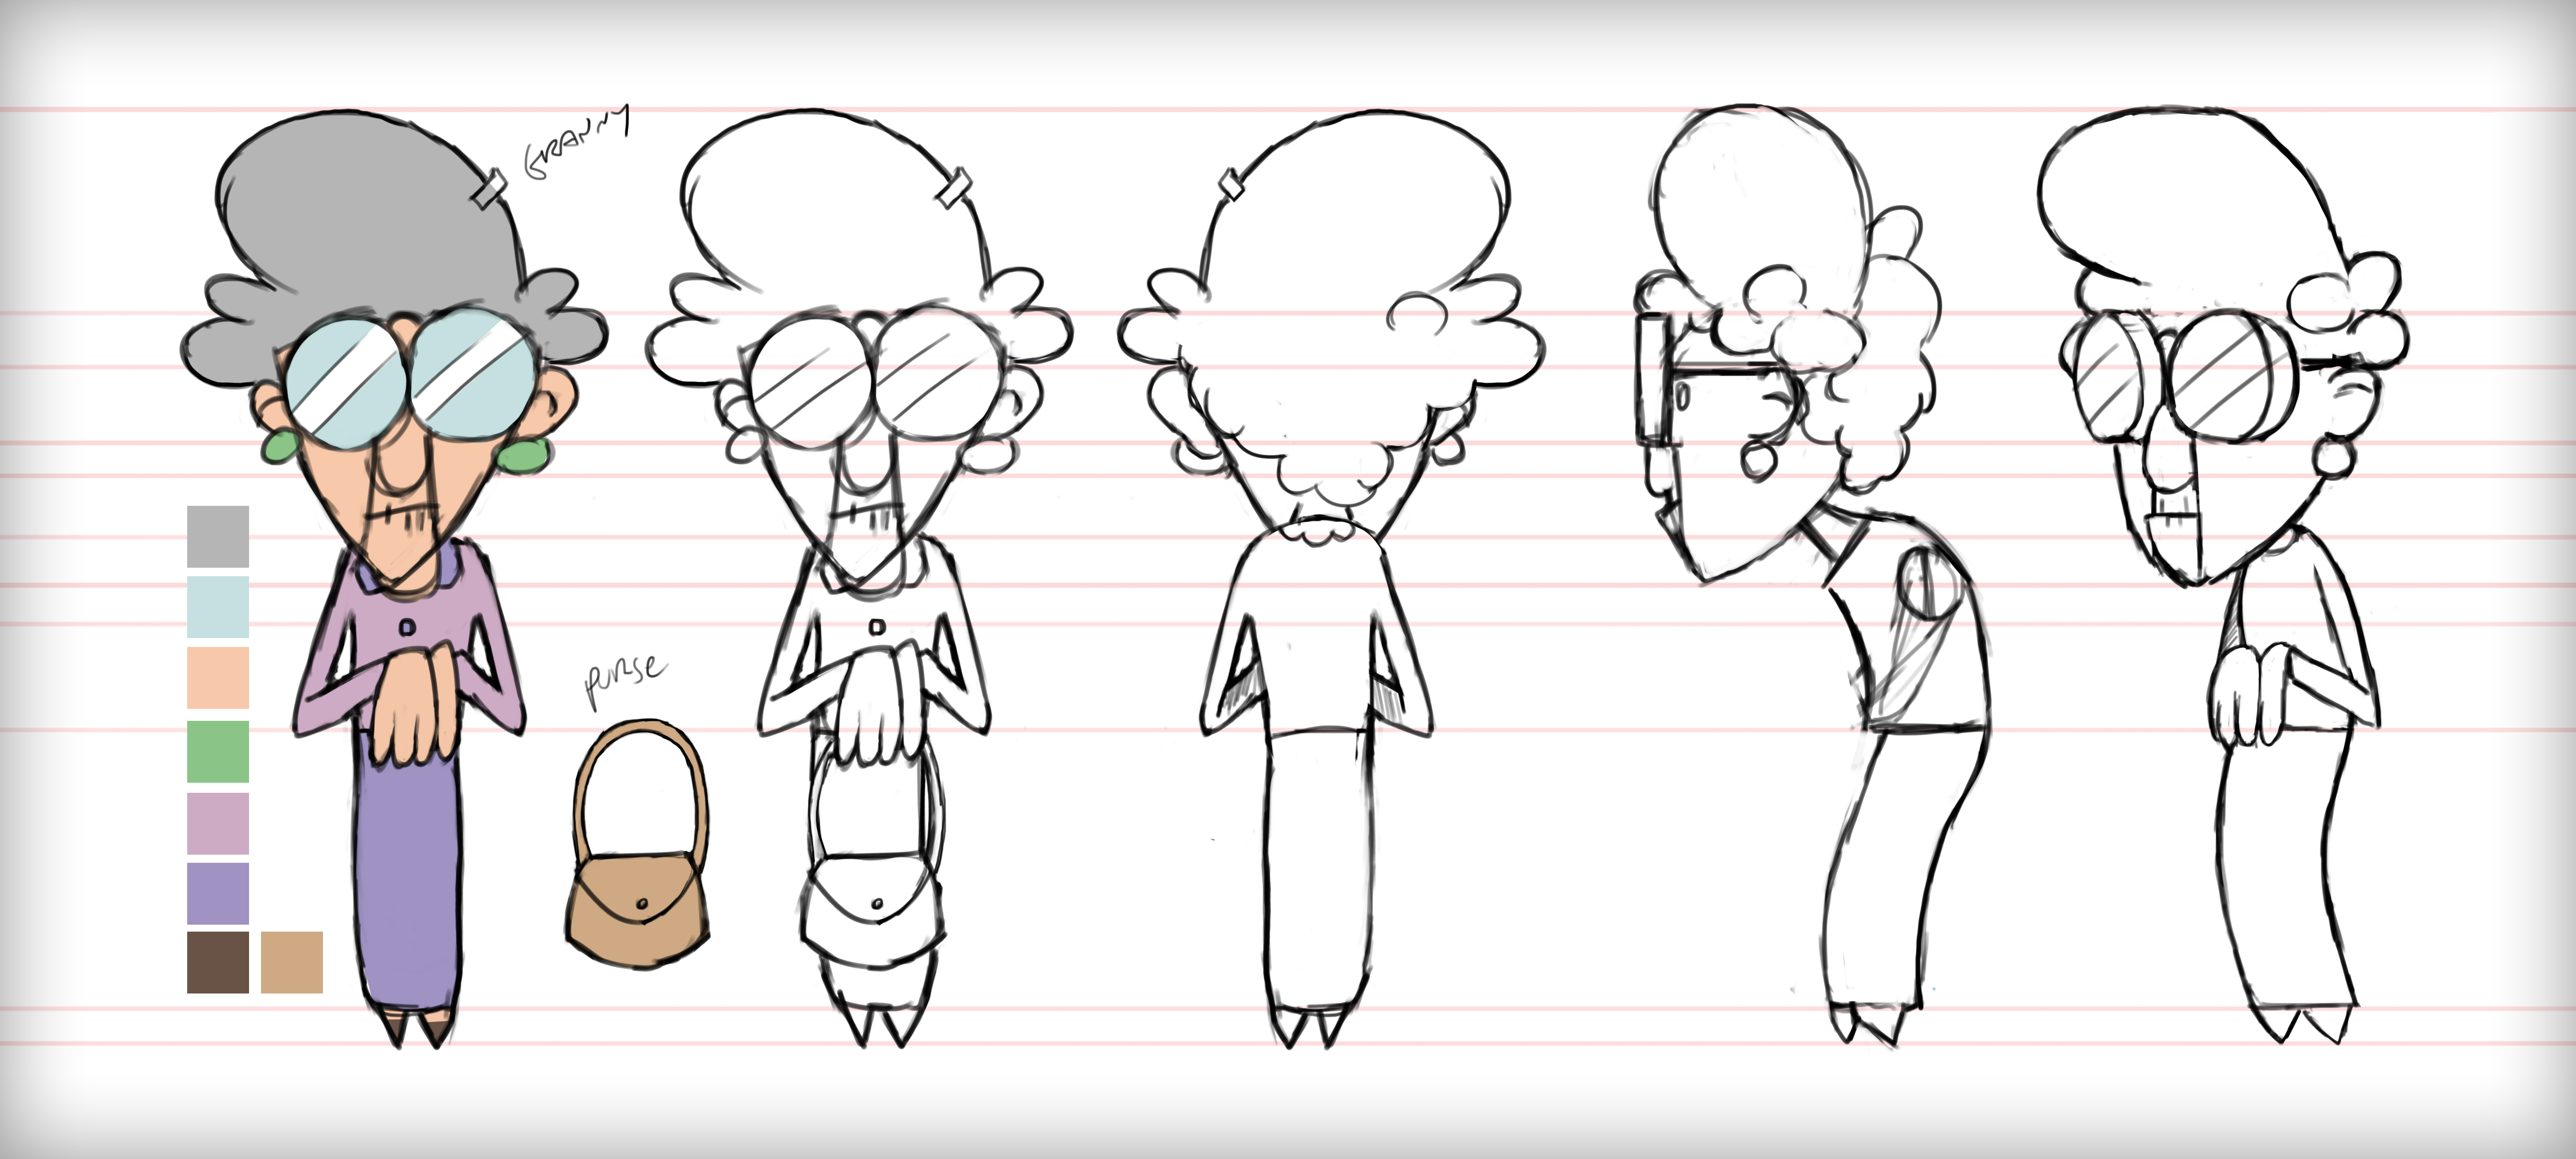 Character Design College Major : Major project week character turnarounds assets and